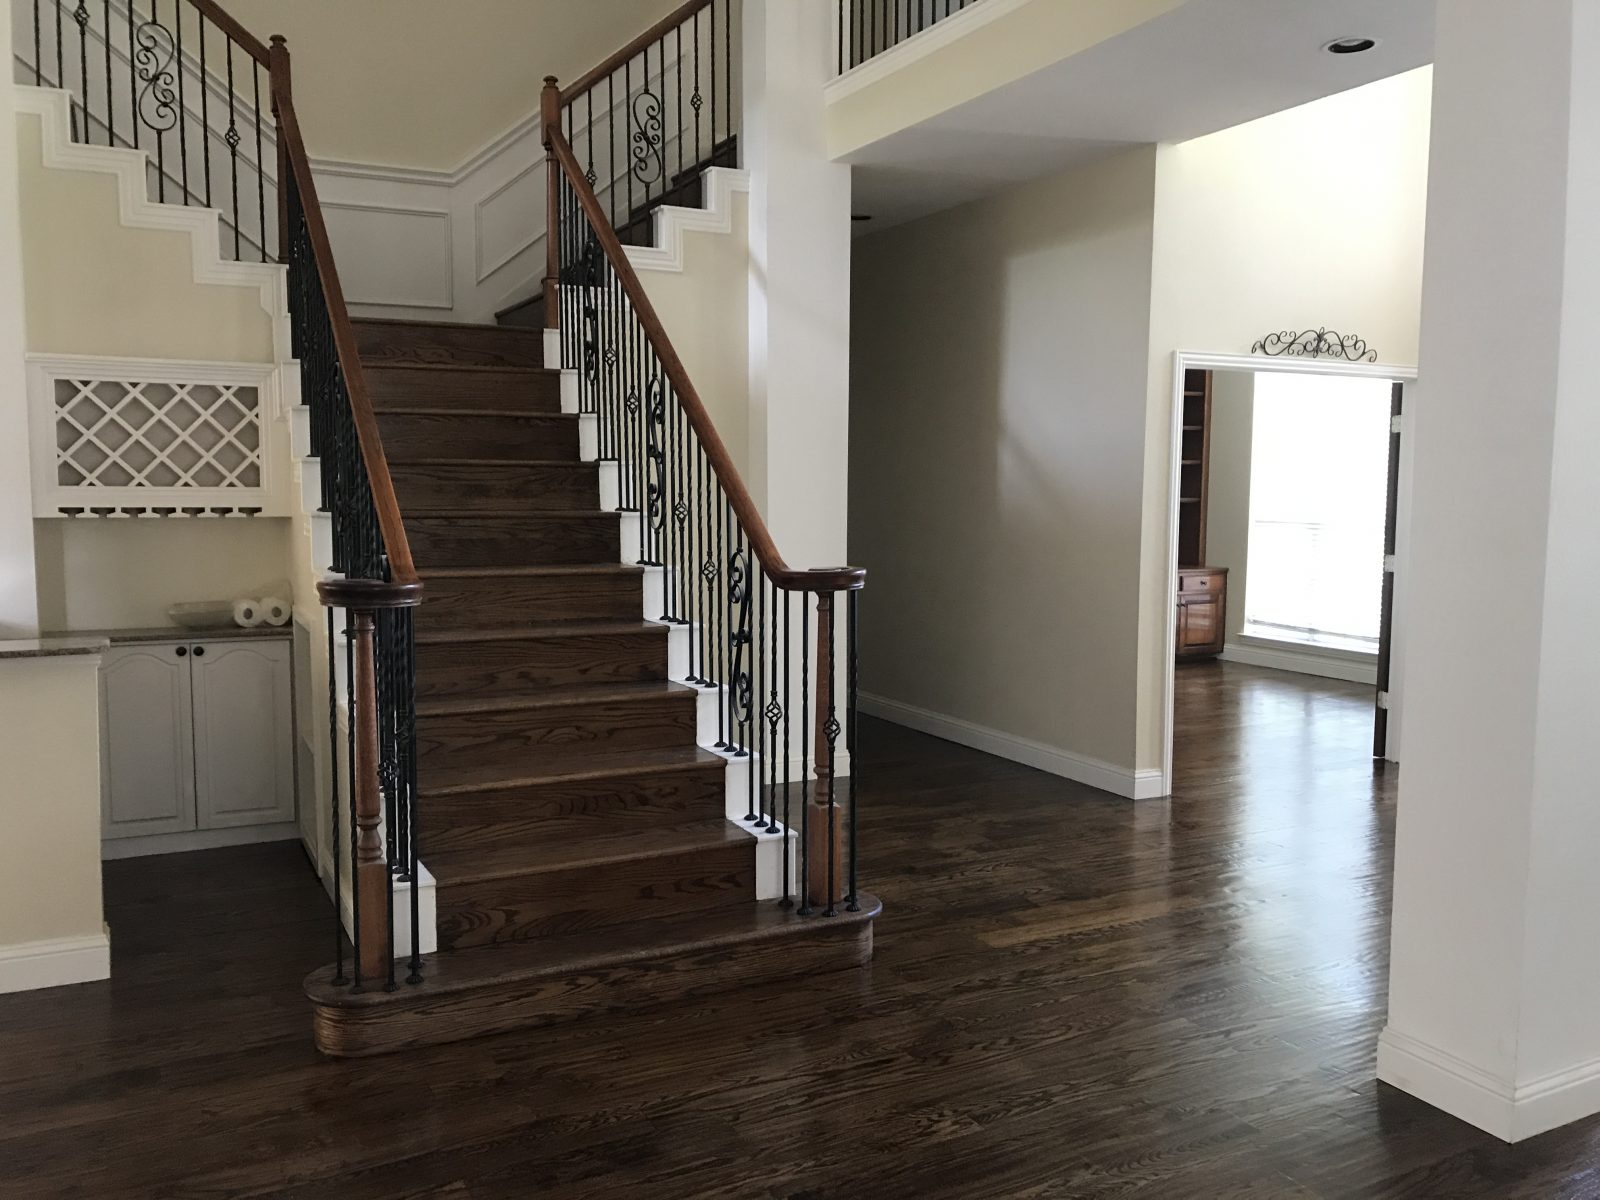 Installing quality hardwood flooring & stairs in Plano, TX